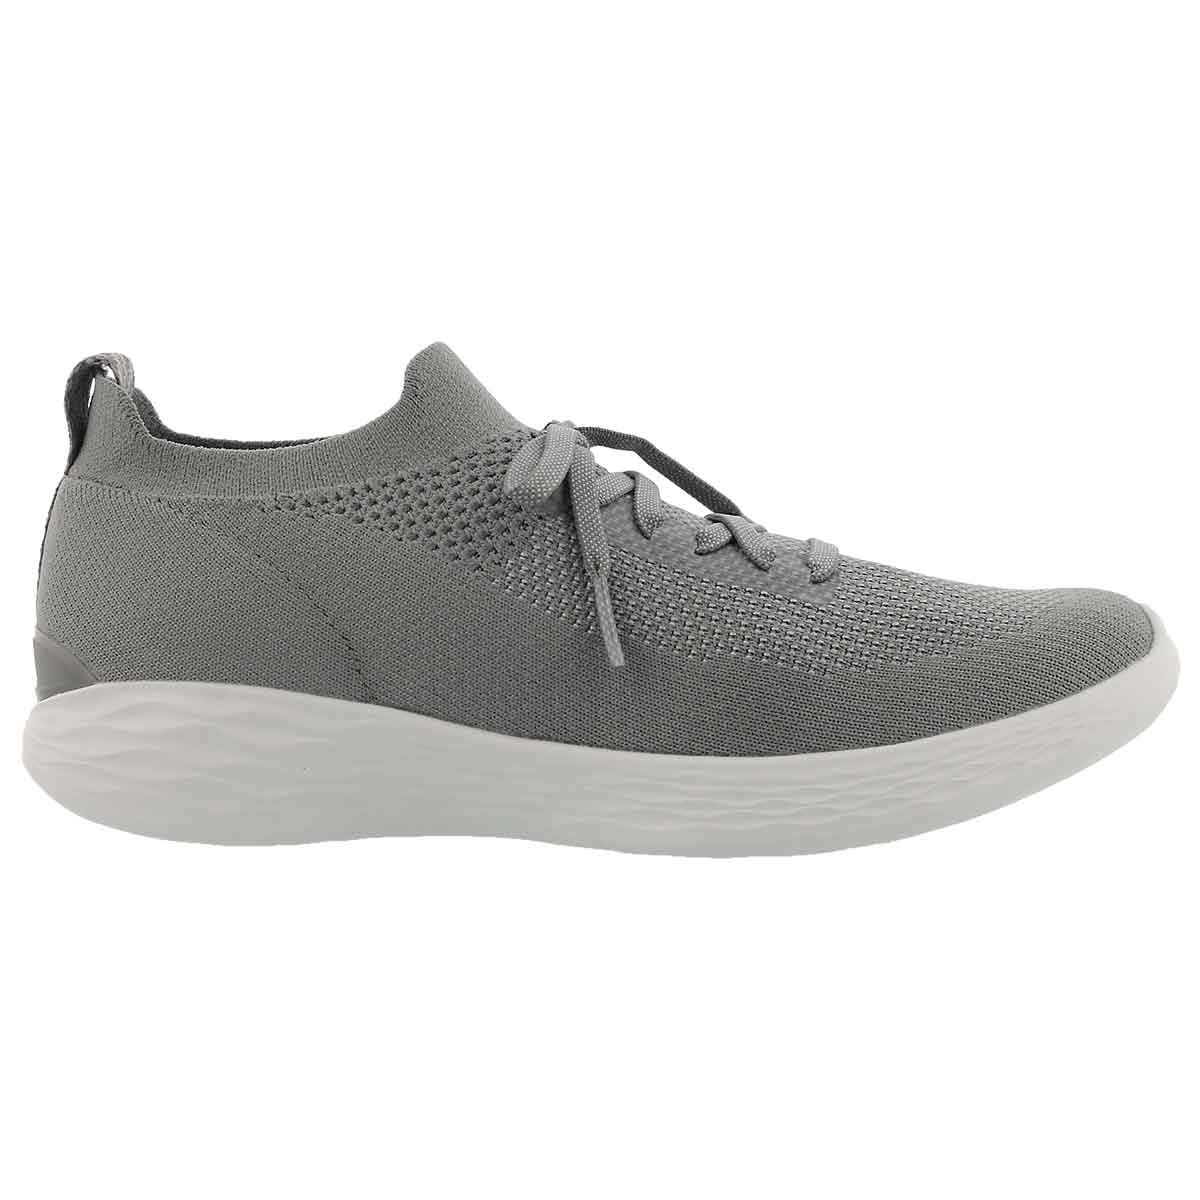 Lds You Shine grey slip on sneaker